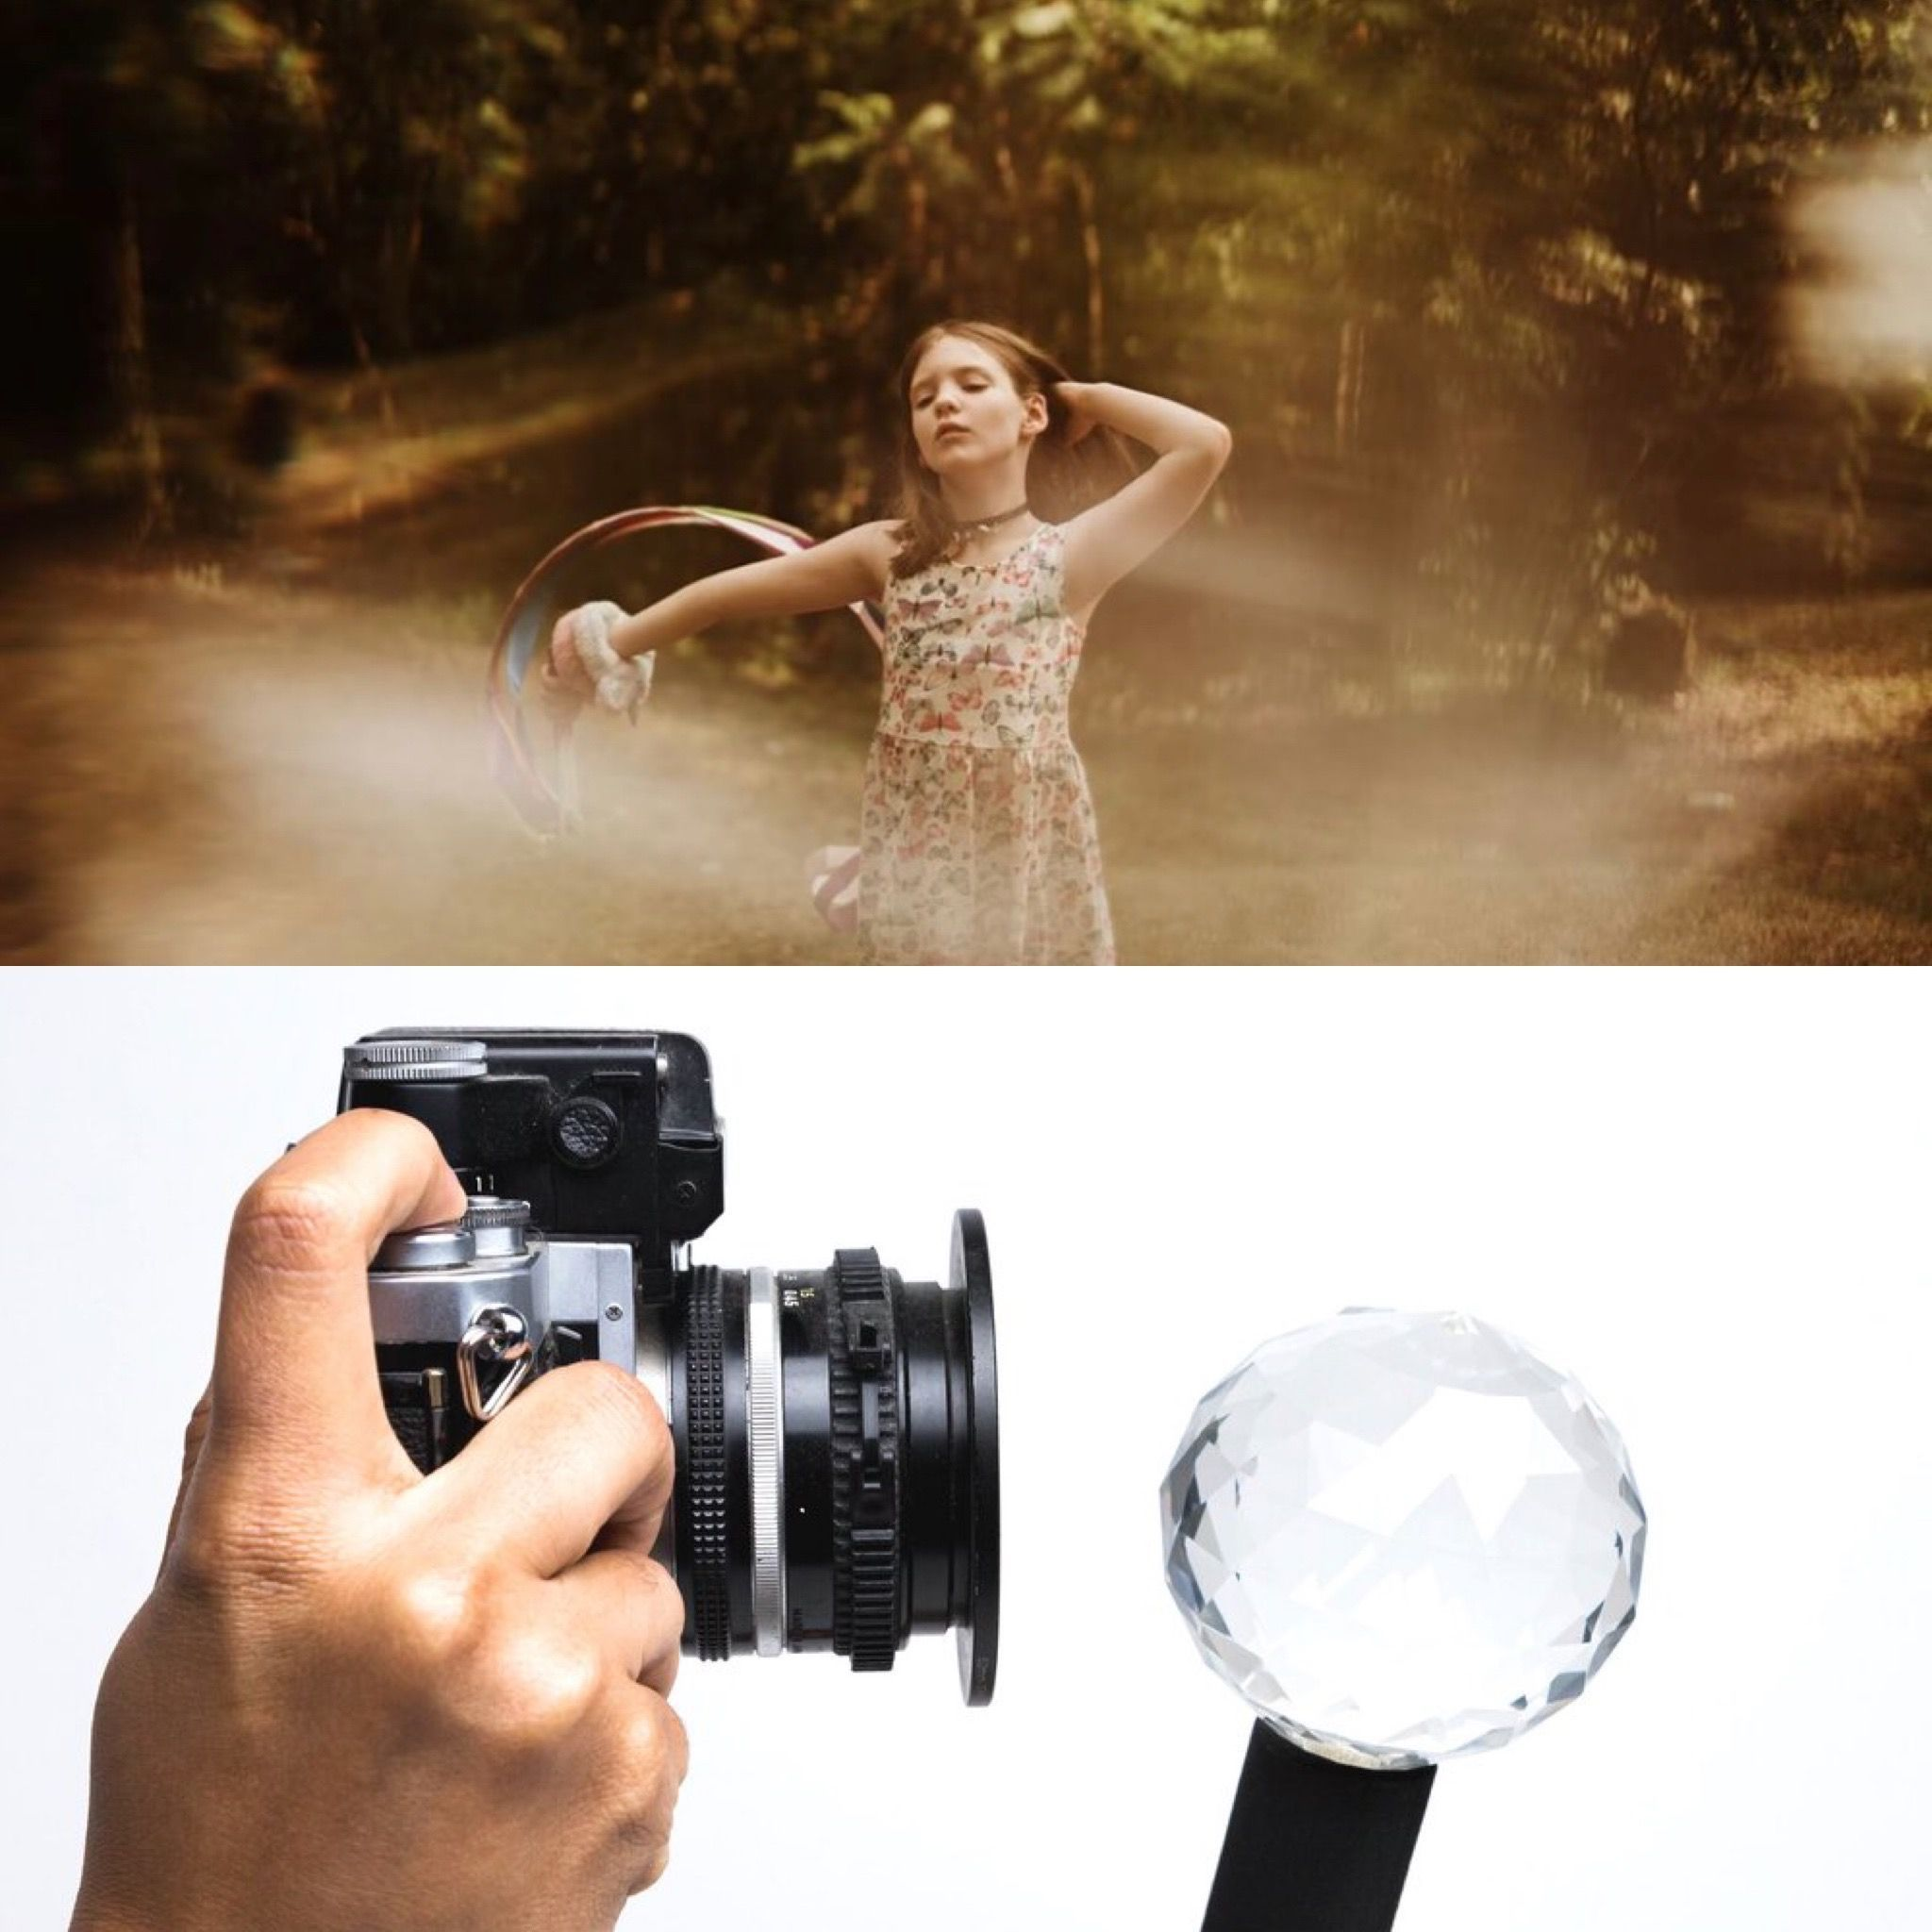 Refract the light to fit your photoshoot aesthetic #prismlensfx #orbprism #jawdroppingshots #photographysouls #justgoshoot #cinematography #mastershots